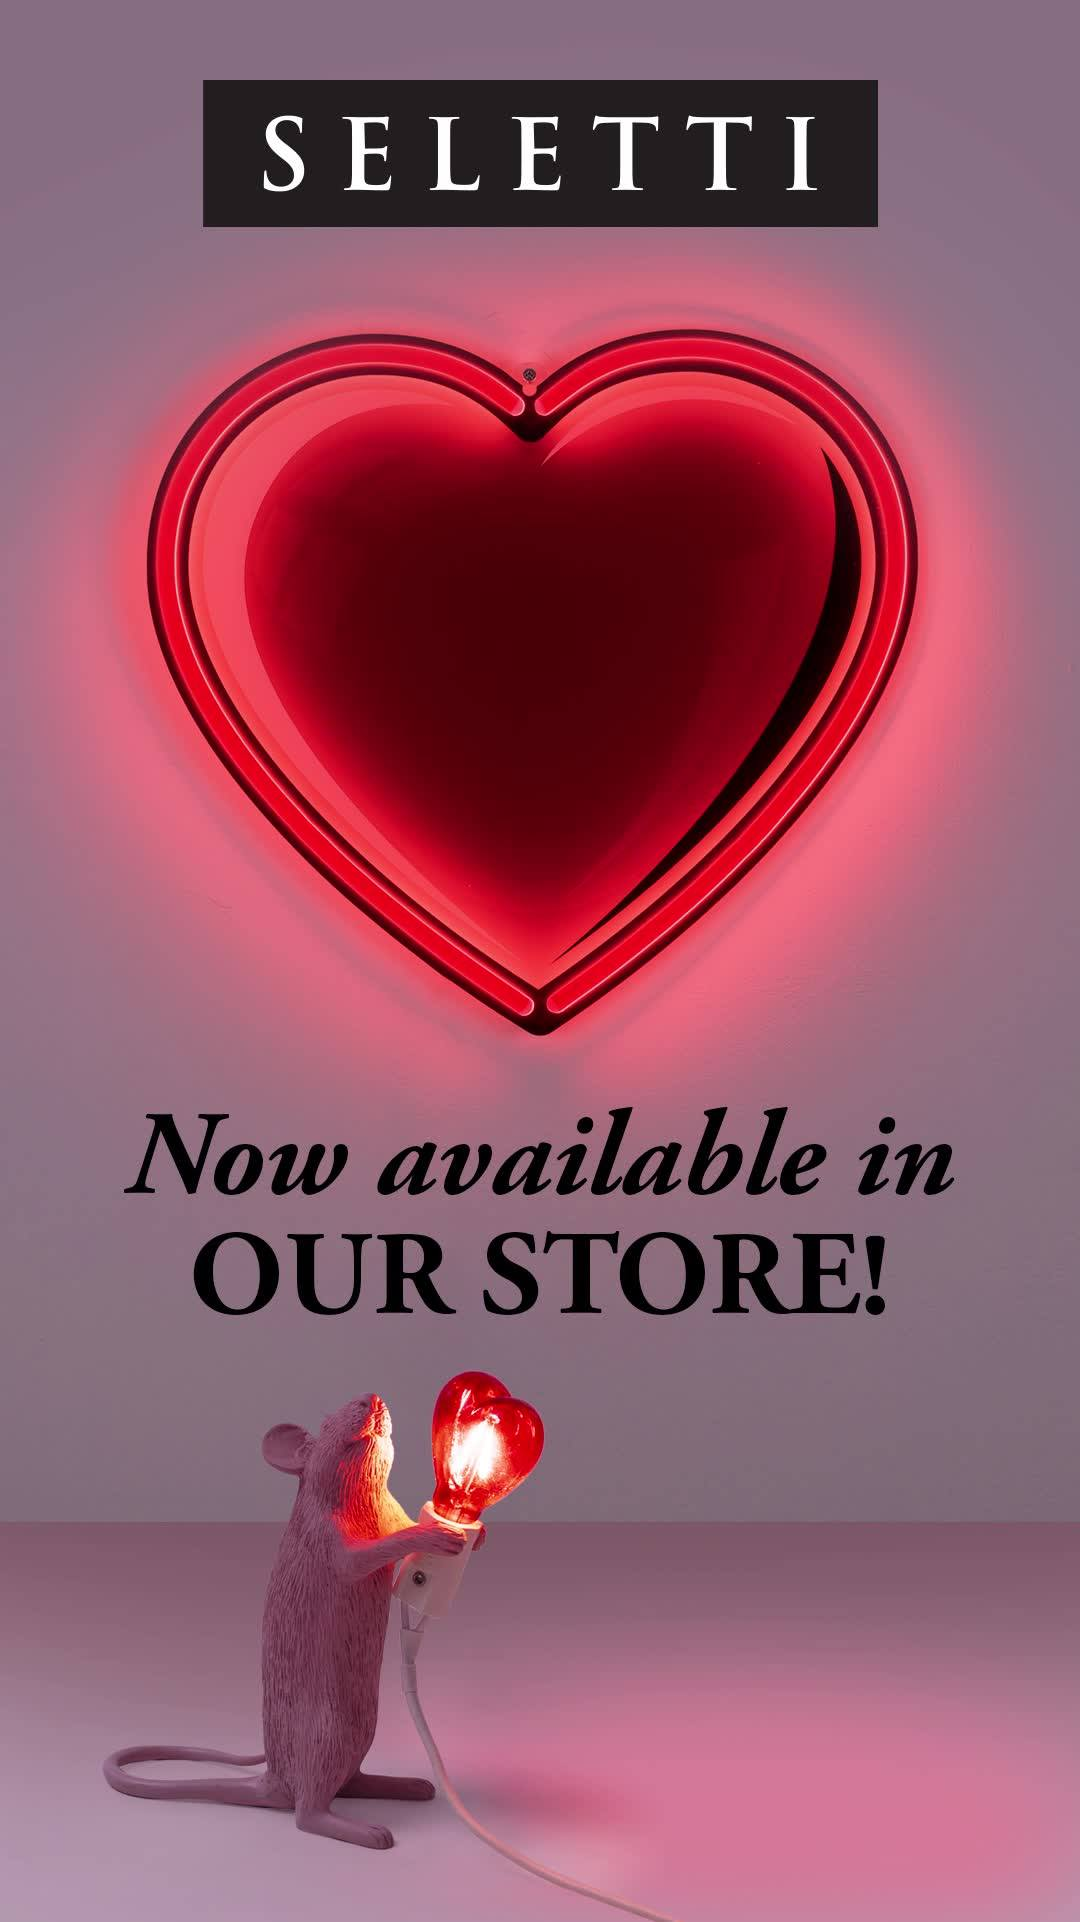 2 NEW Special LOVE Ideas now available in OUR STORE! ❤